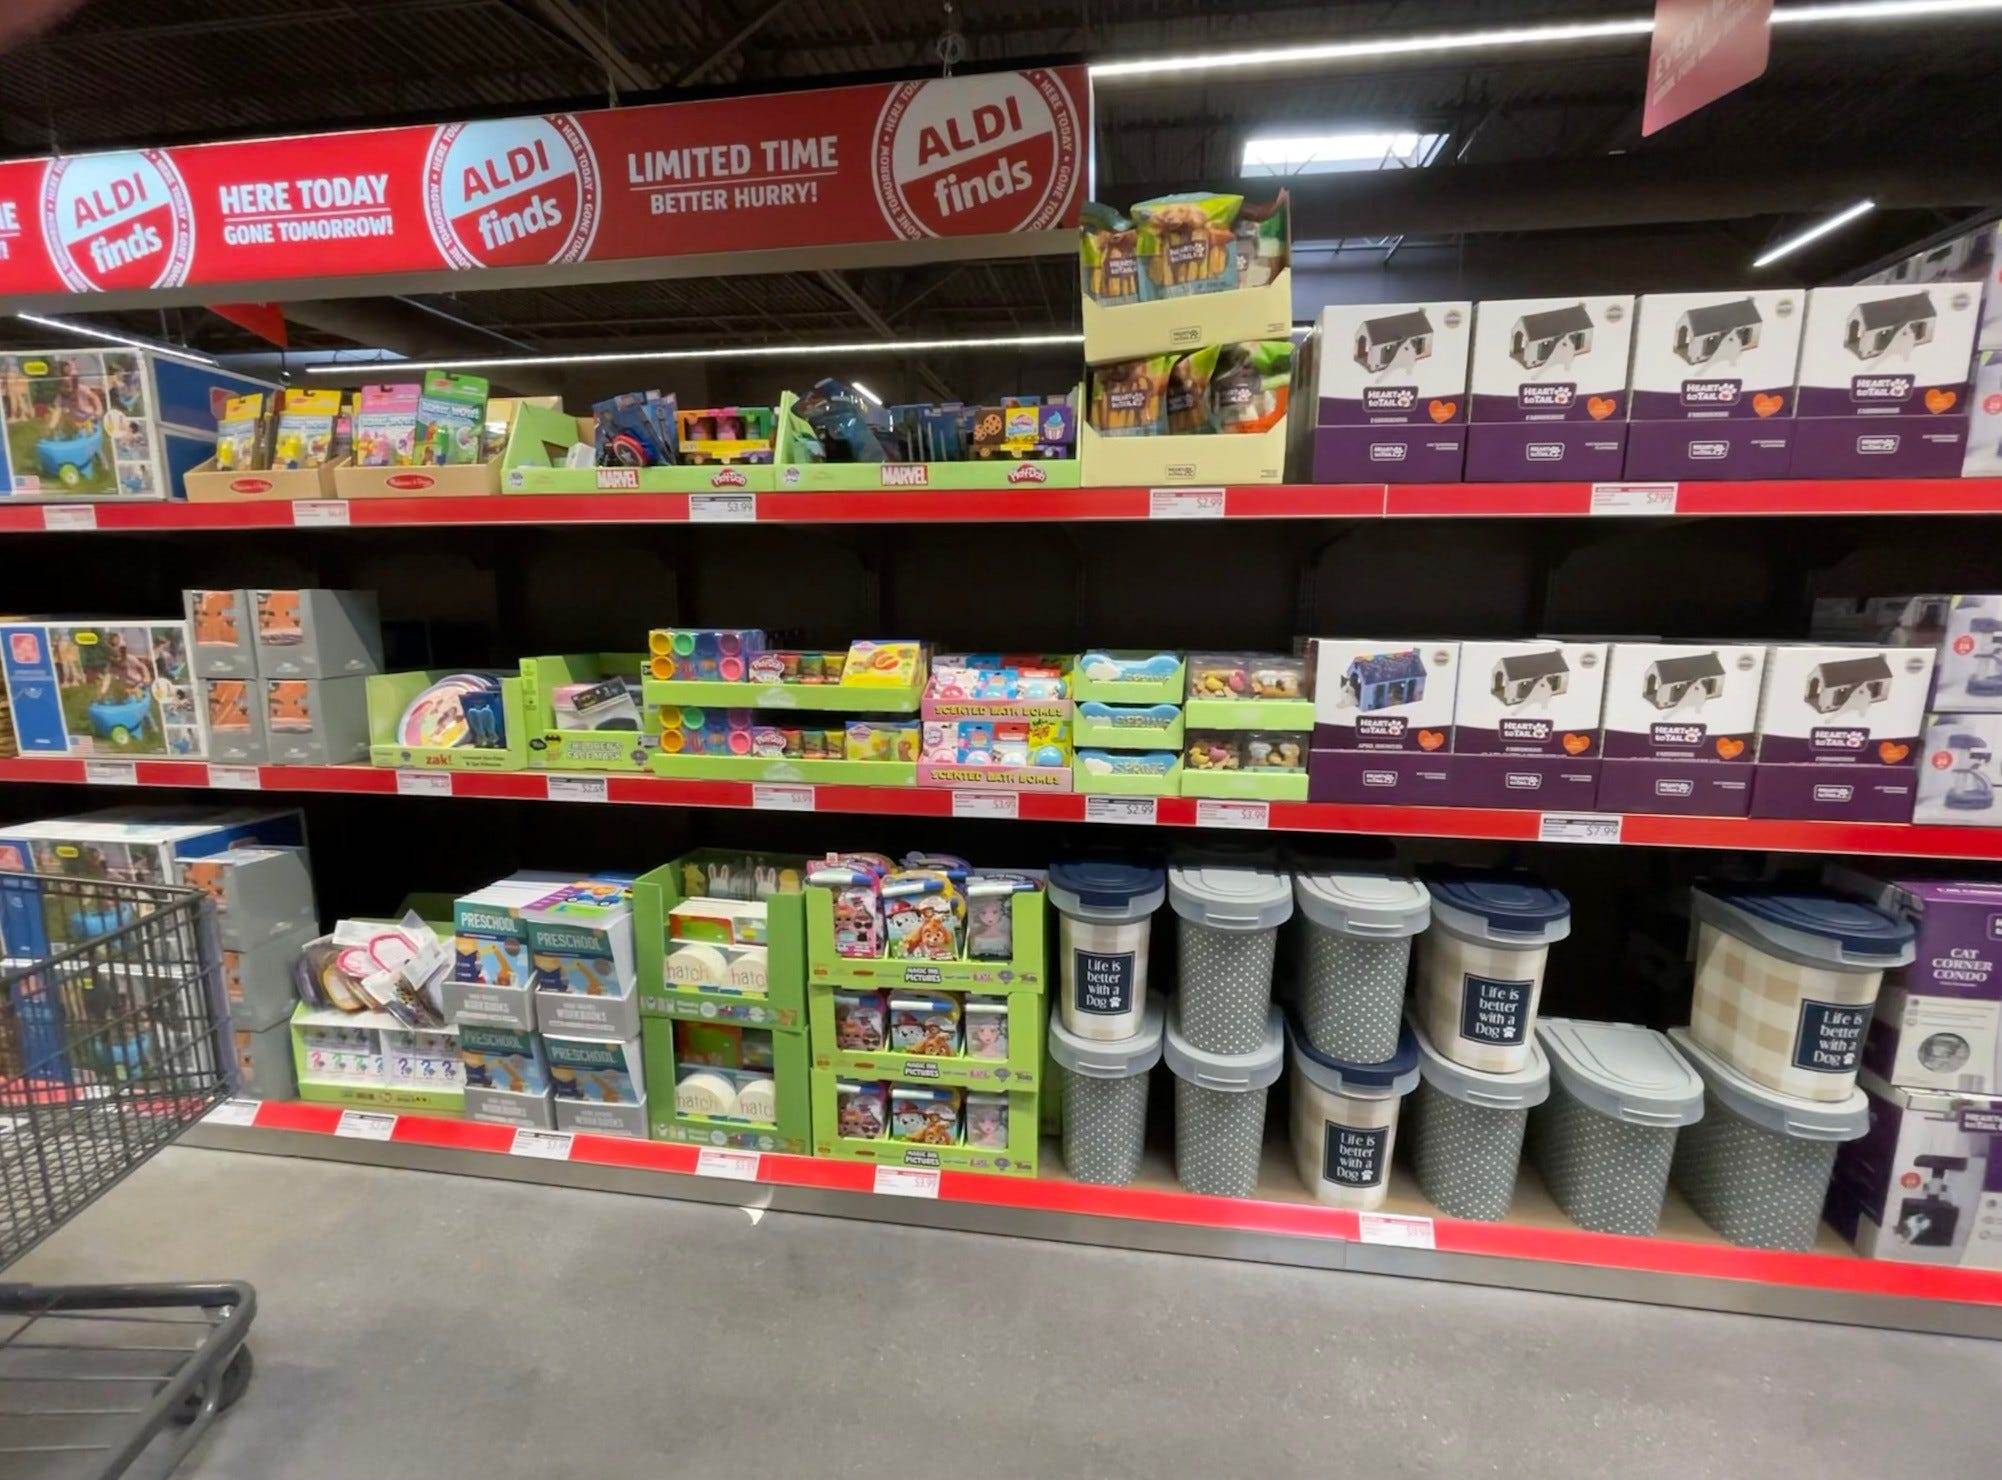 Aldi Finds are limited-time deals that constantly are changing. If you see something you want, don't delay.